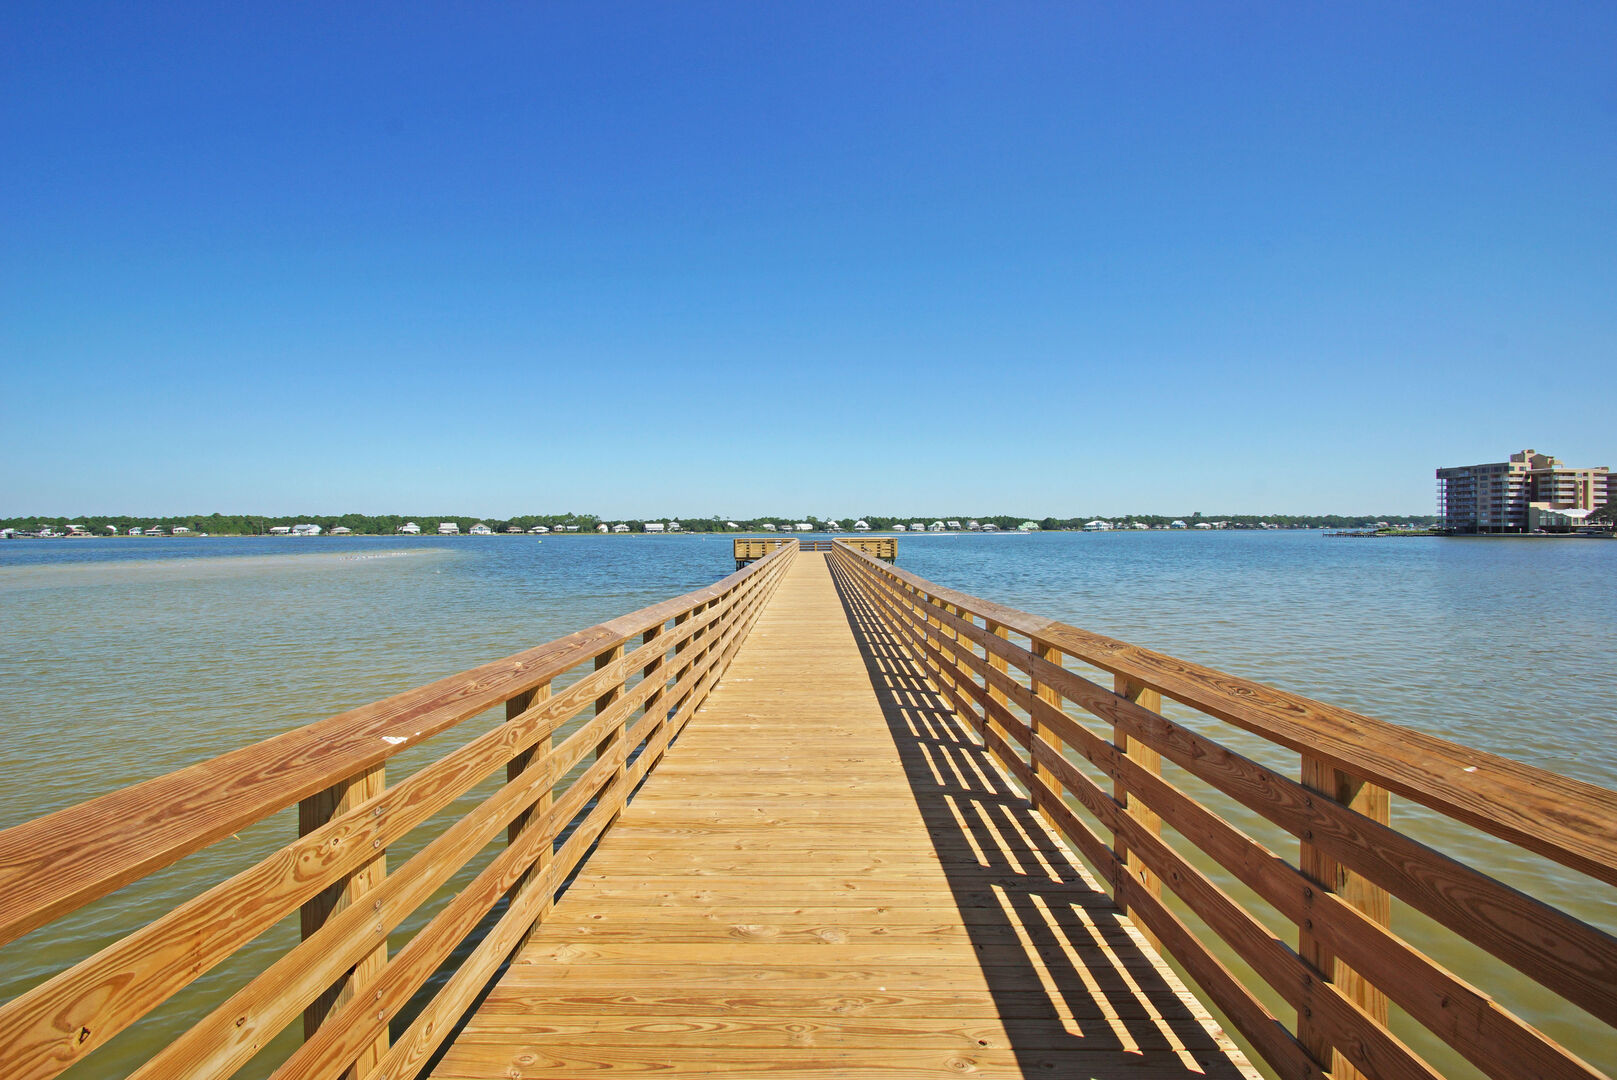 Just outside the home is a brand new fishing pier